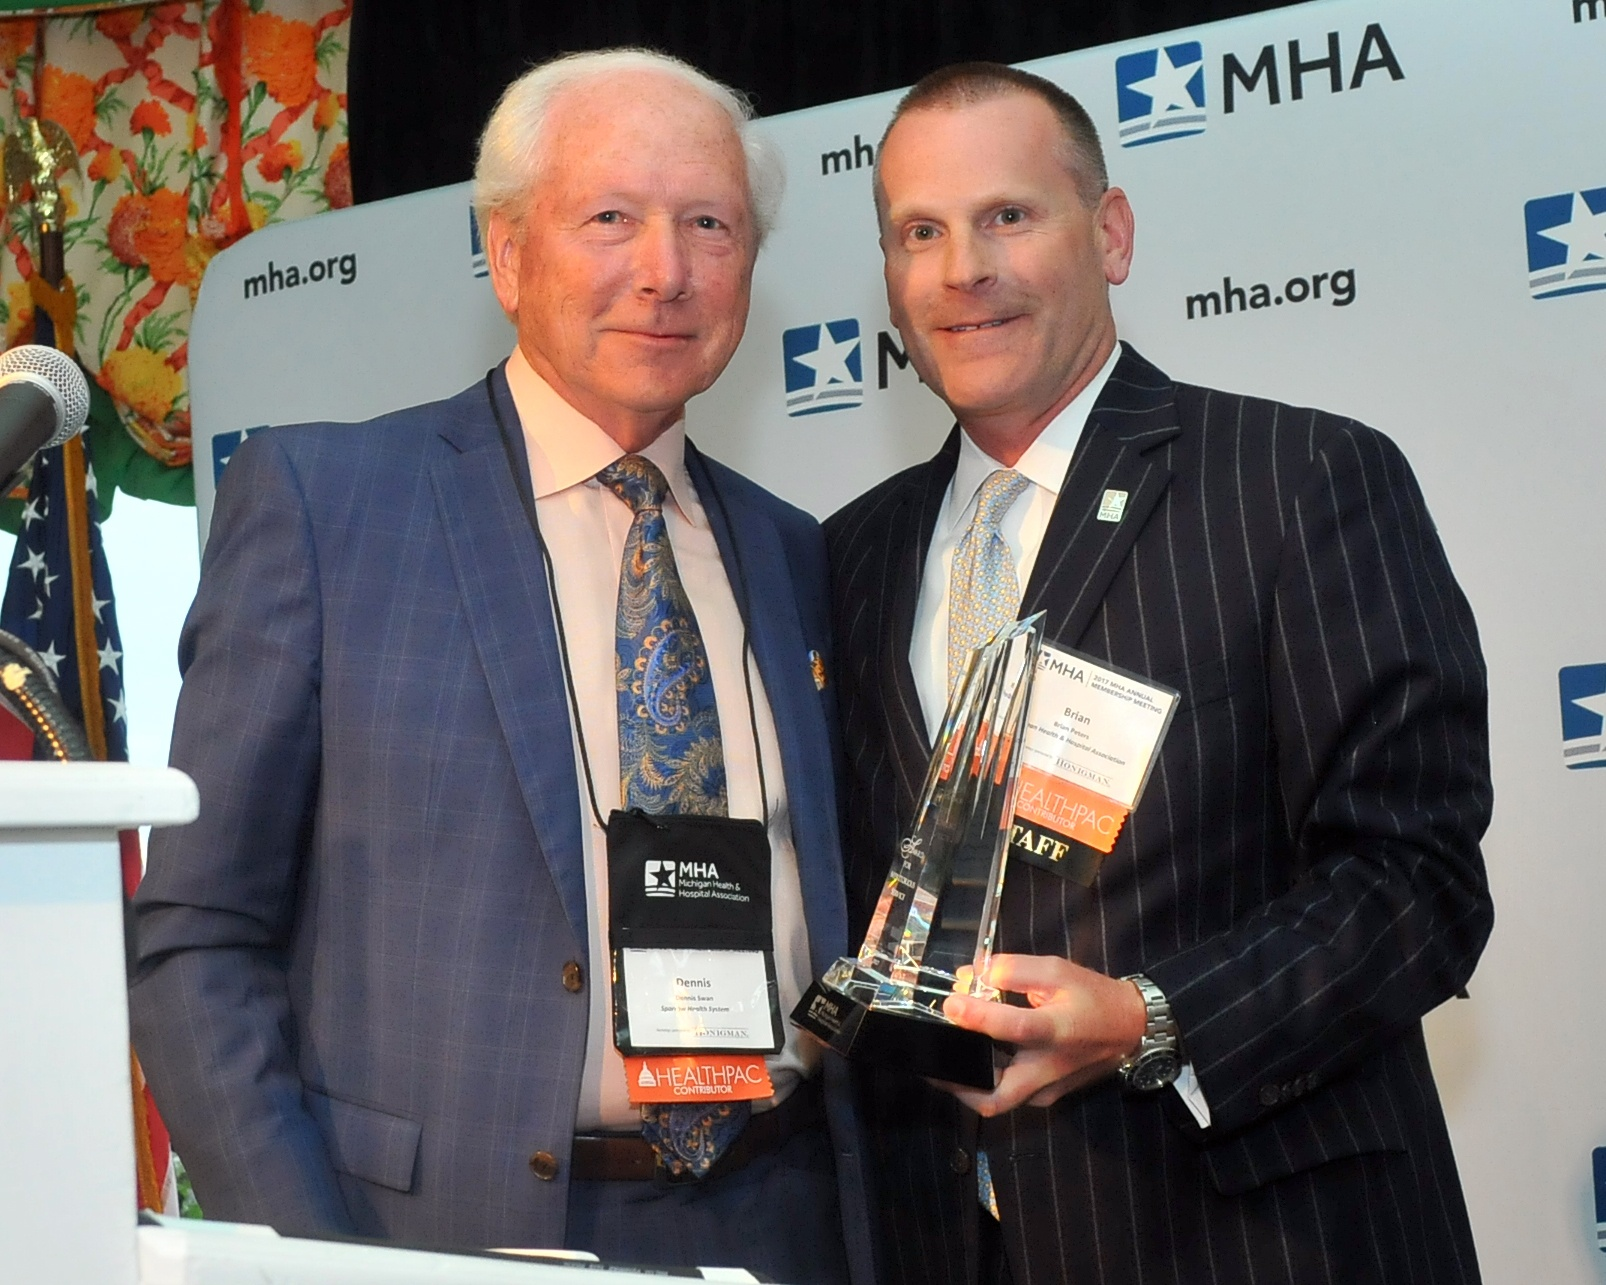 The photo feature Dennis with MHA CEO Brian Peters